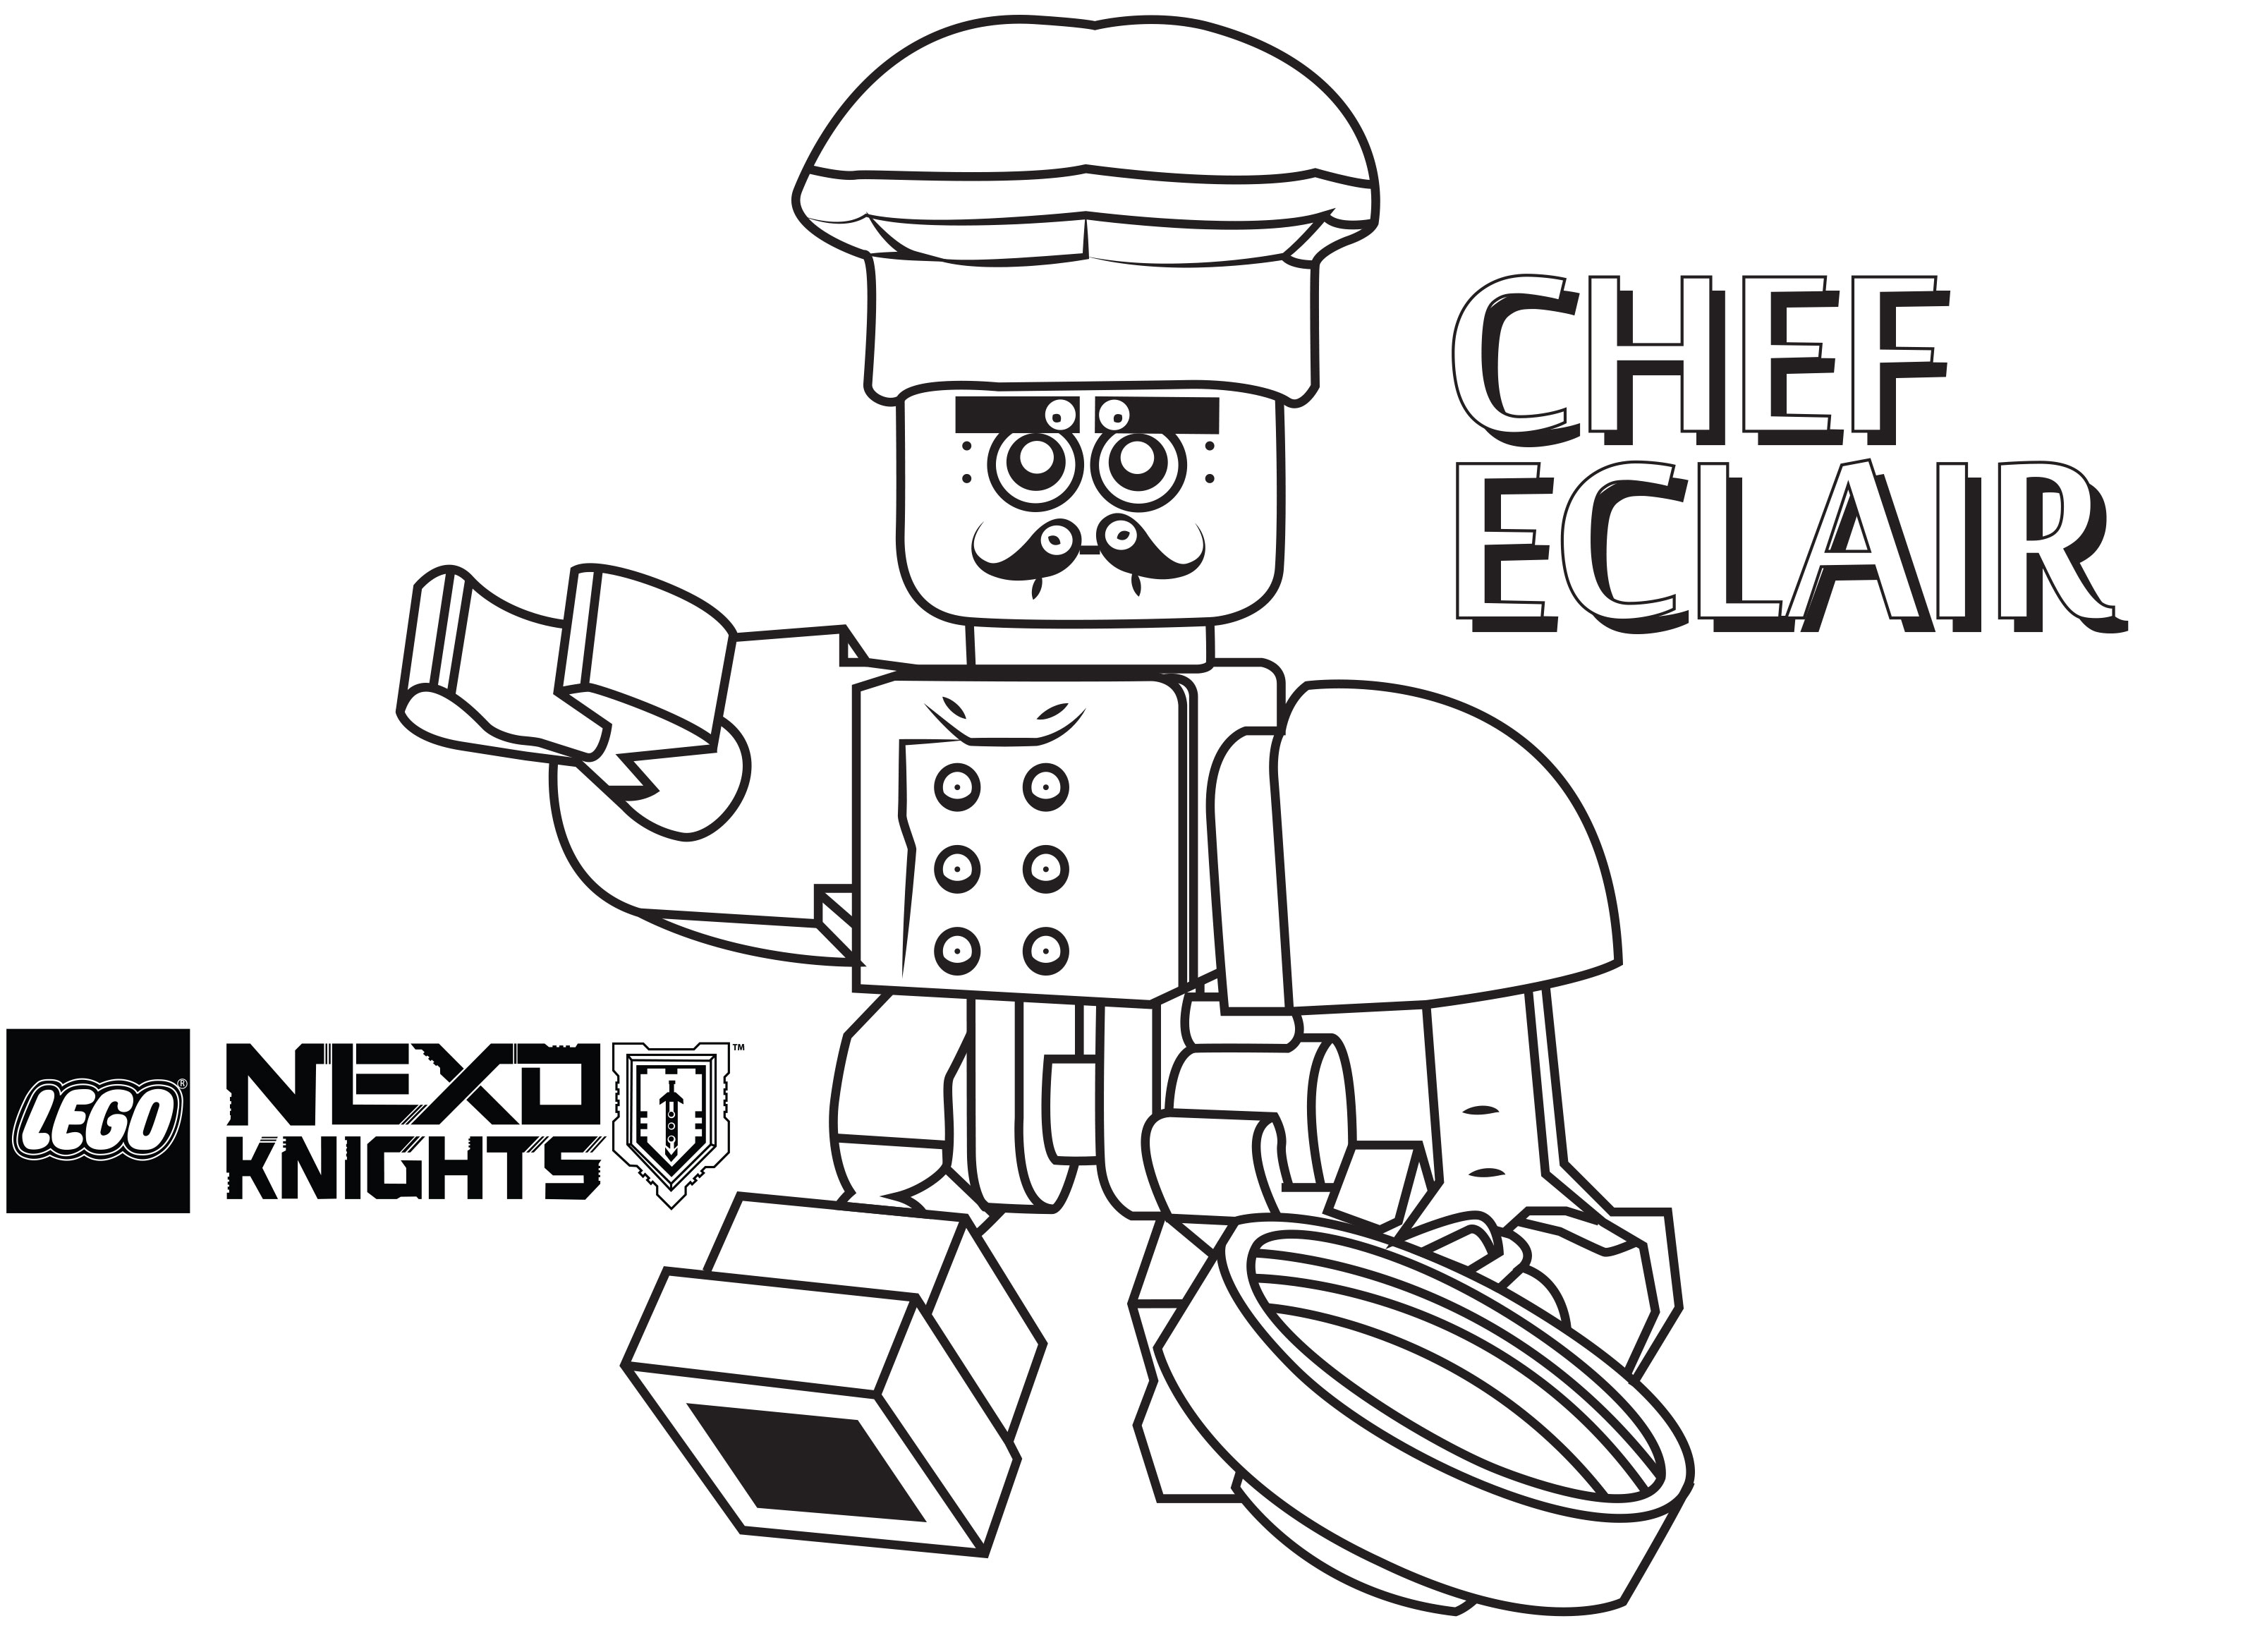 3180x2342 Lego Nexo Knights Coloring Pages Chef Eclair